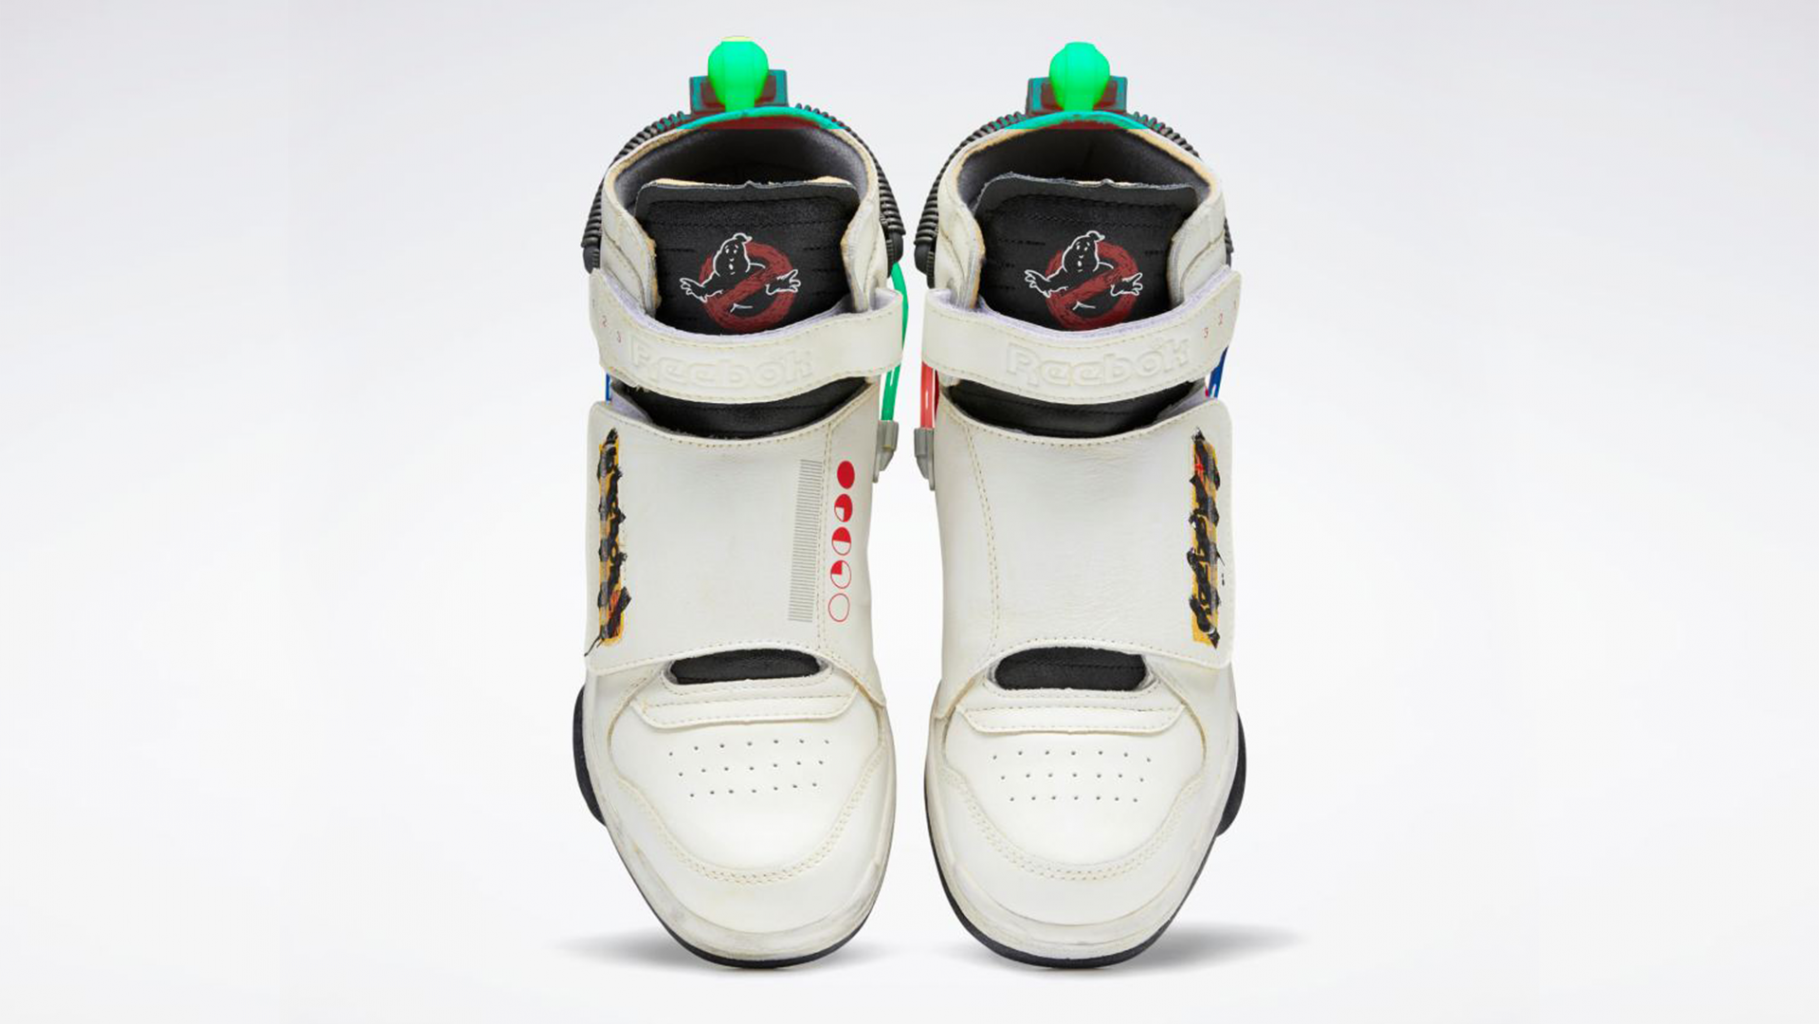 Ghostbusters_Ghost_Smashers_Mens_Shoes_White_FY2106_06_standard_hover.png